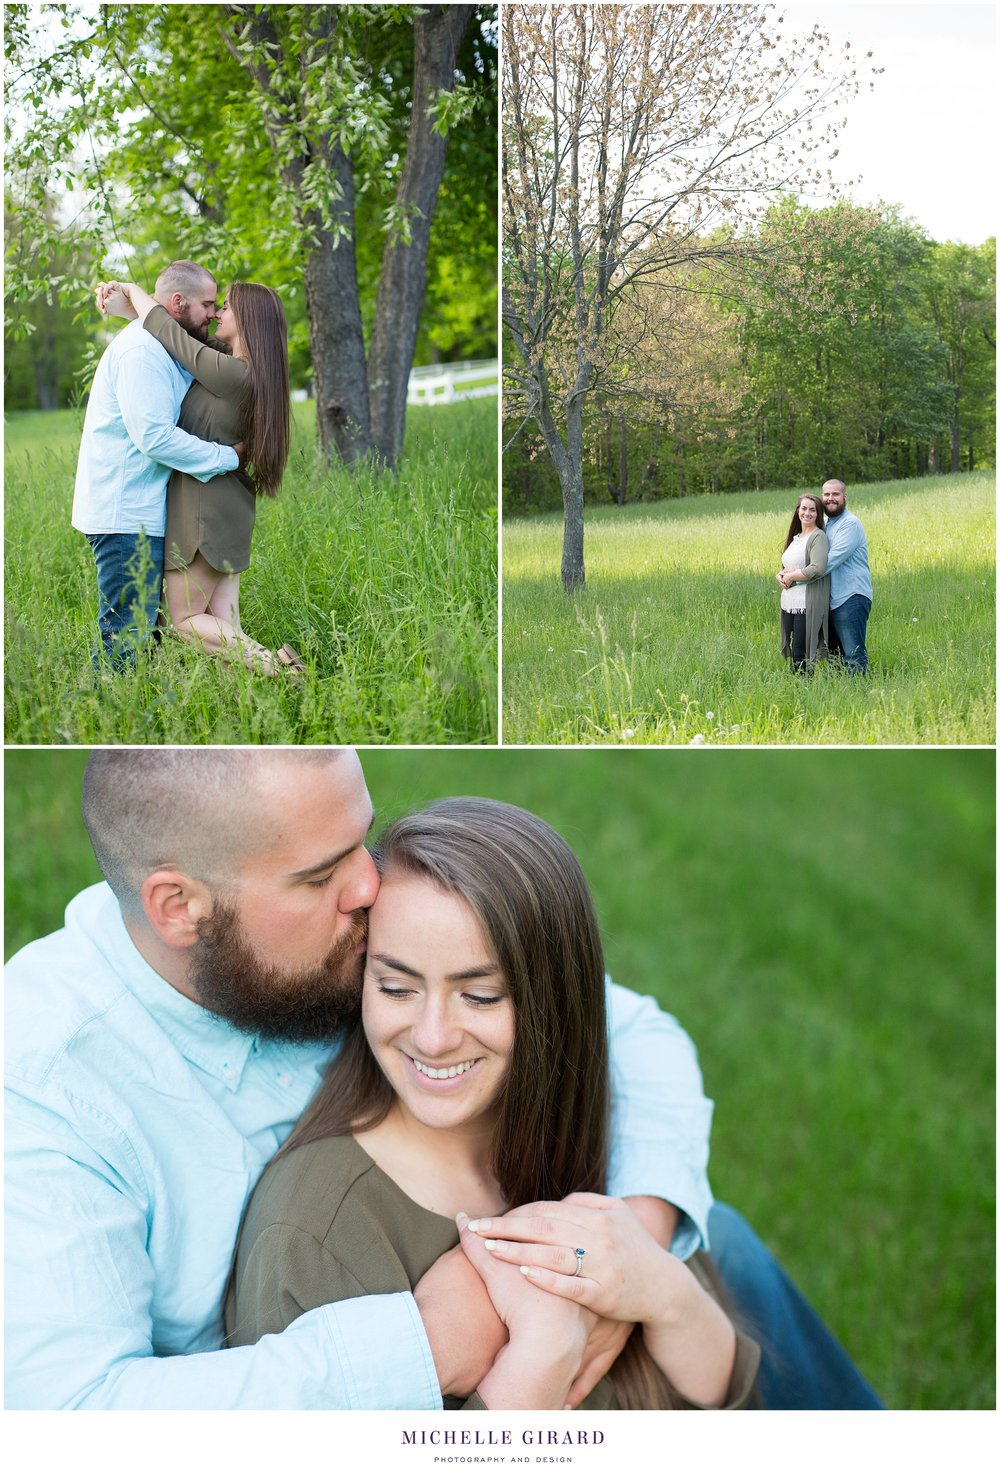 BackyardCountryEngagementSession_MichelleGirardPhotography07.jpg